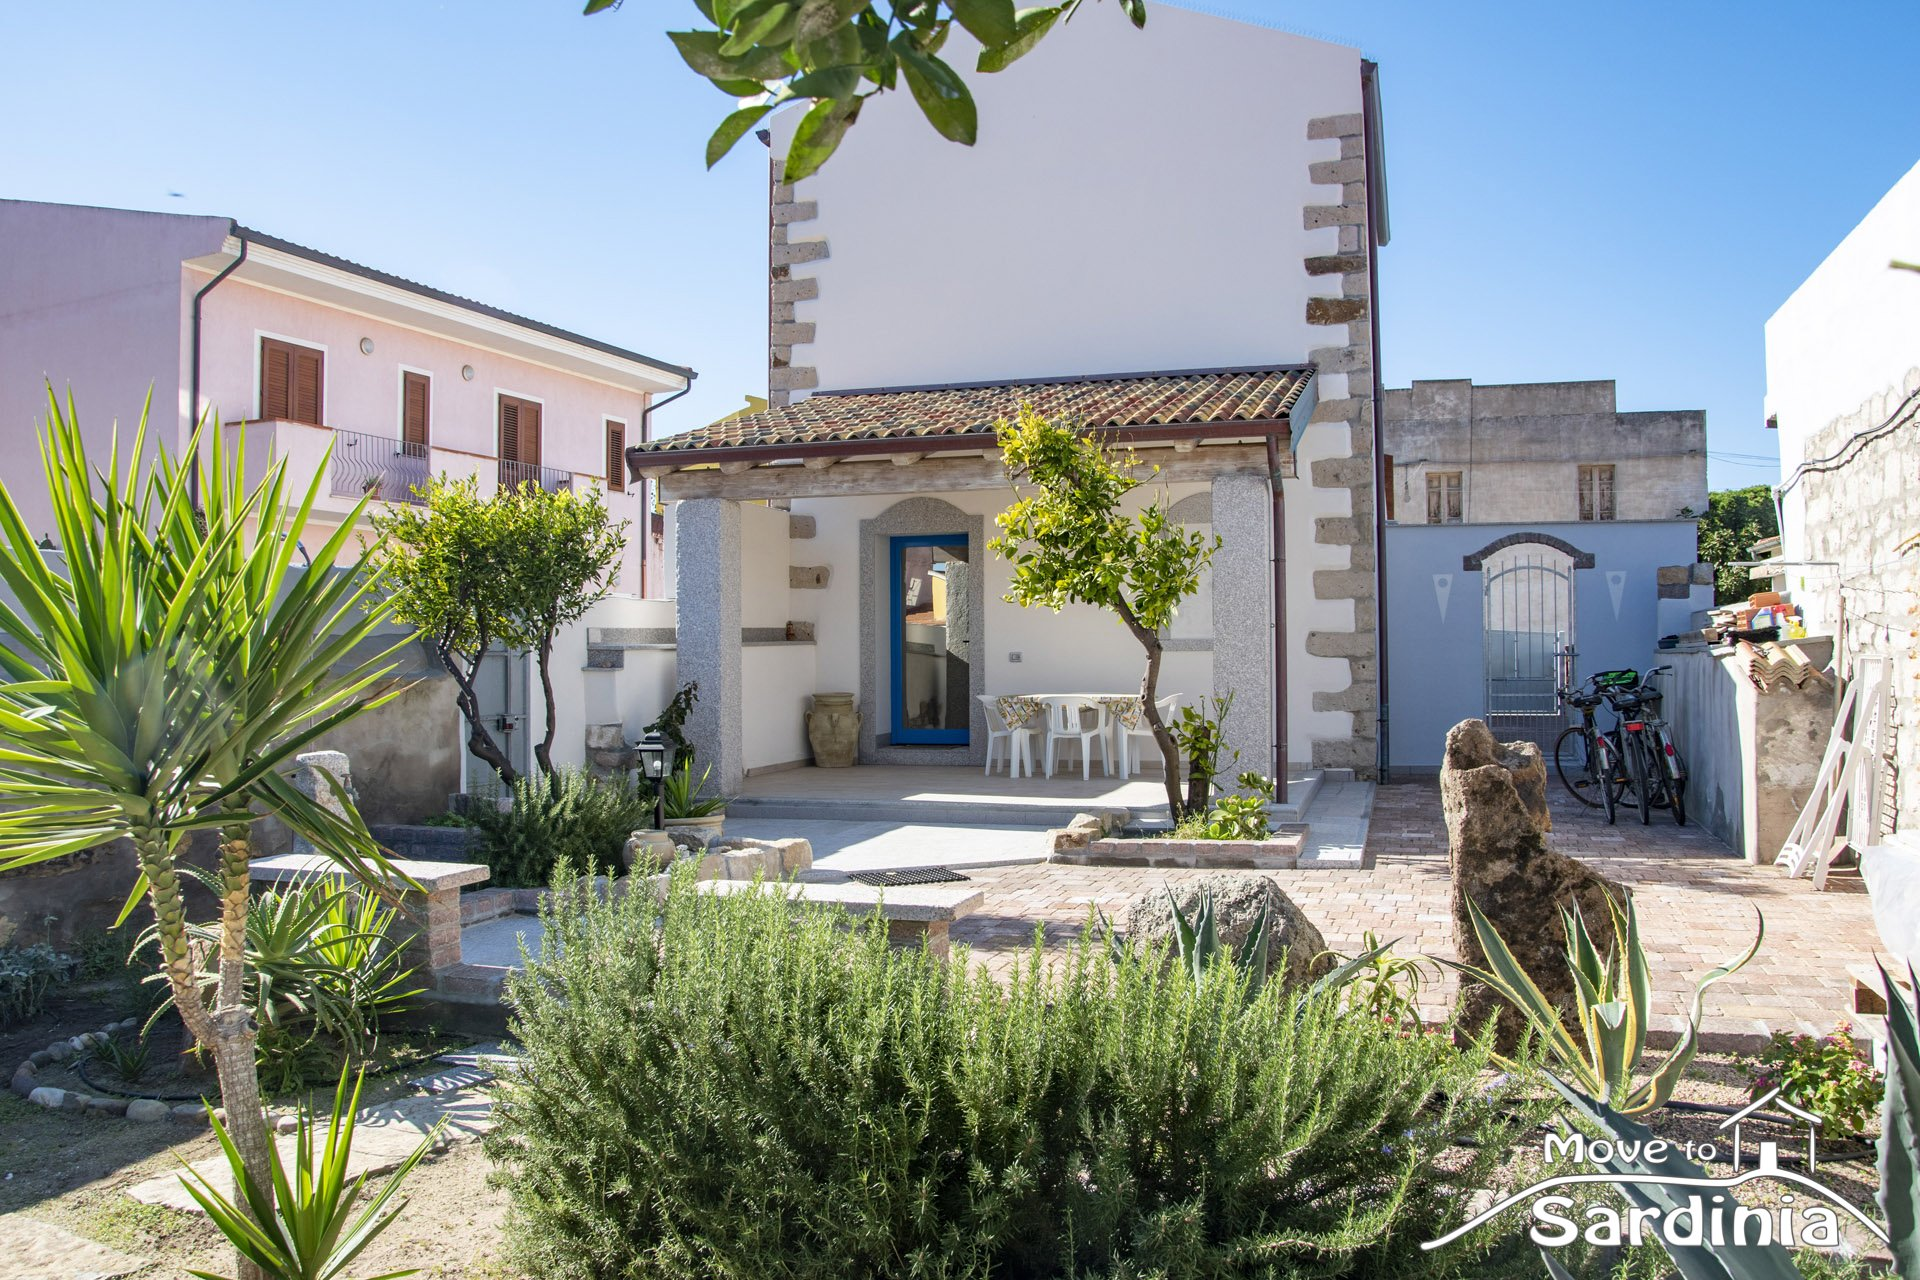 House for sale in Sardinia, beautiful villa recently renovated, excellent finishes